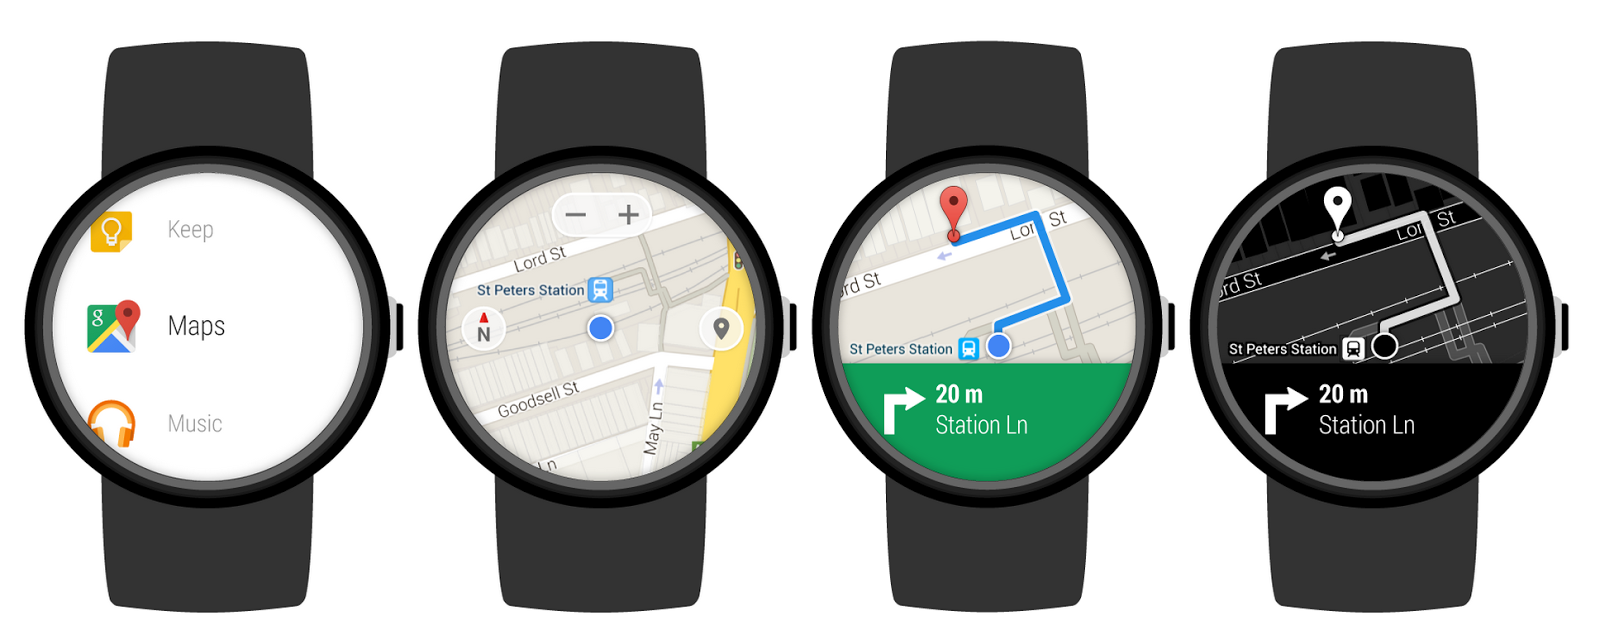 google maps api ios with Die 5 Wichtigsten Smartwatch Plattformen Aus Der Sicht Eines Entwicklers on Batch Geocode Addresses Using Bing Maps Api And An Excel Worksheet additionally Apple Maps Vs Google Maps  parison Review Googles Maps Still Better Apple Maps 3464377 moreover 29 also Google Maps In Ionic 2 Native Or Web as well 3186942.